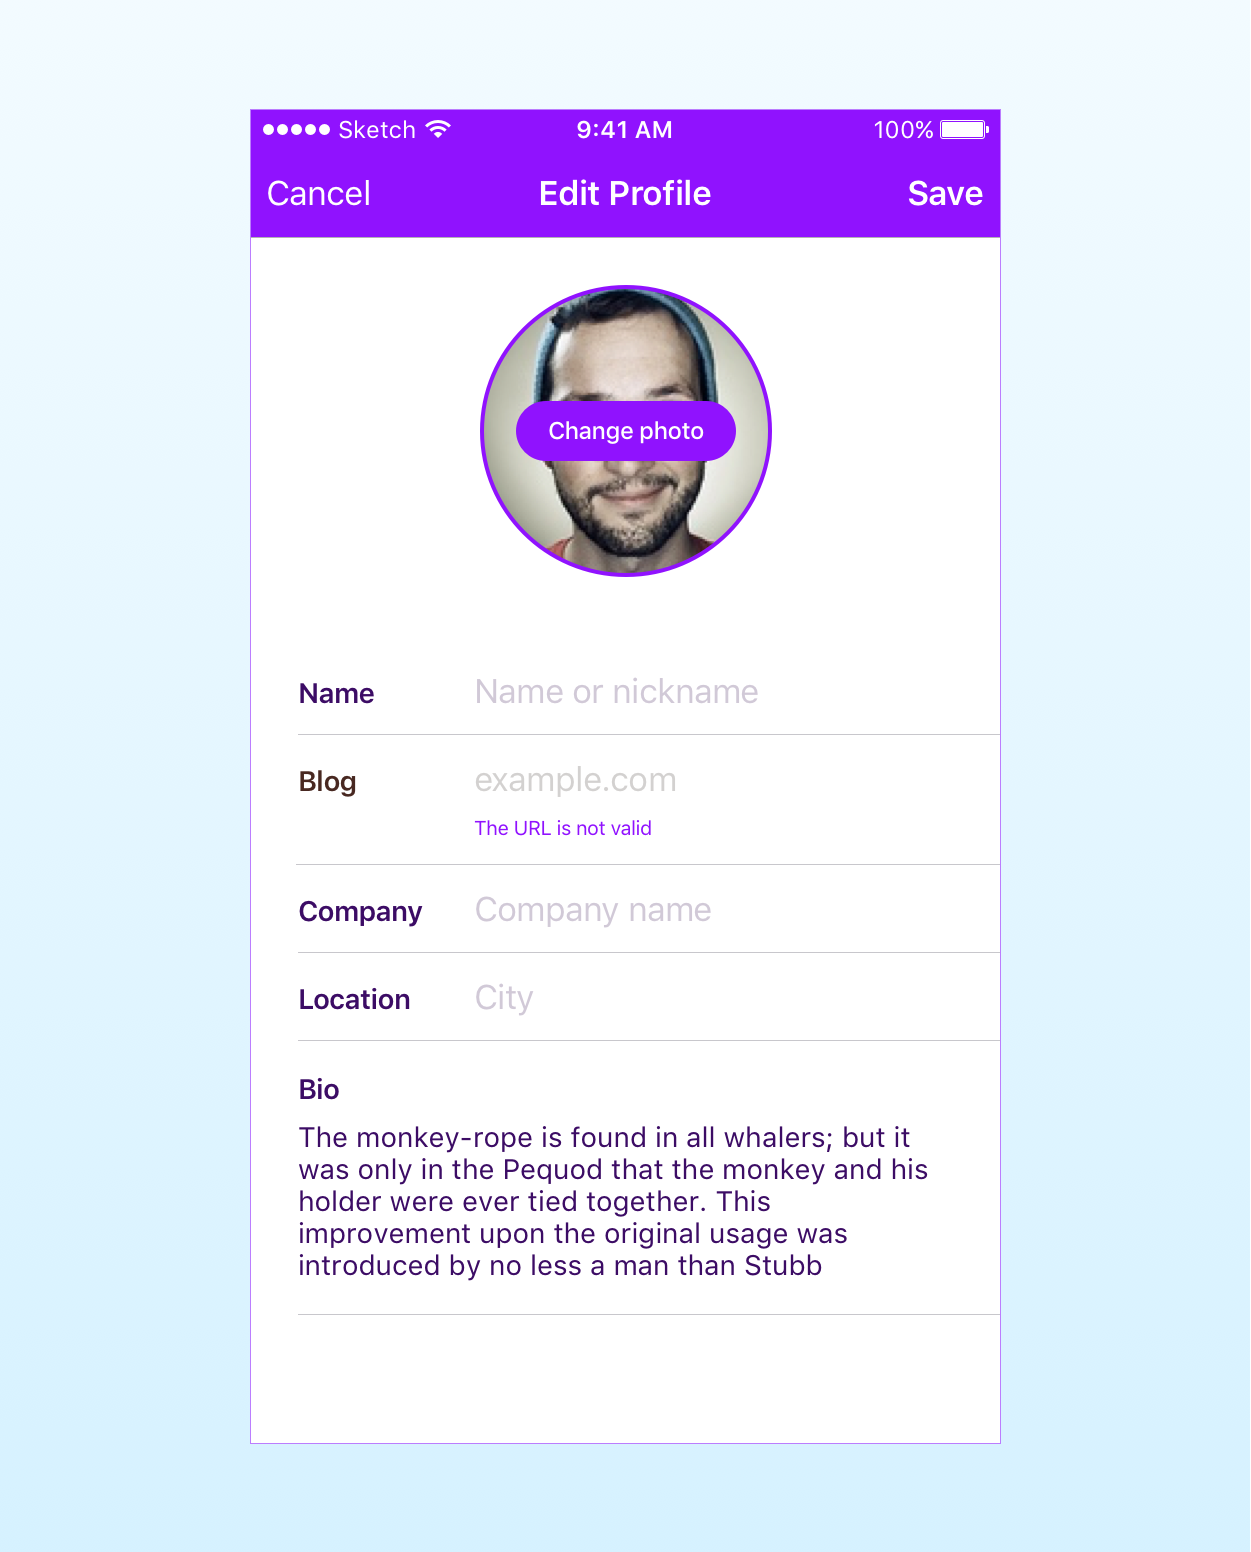 The app's screen to edit the user's profile